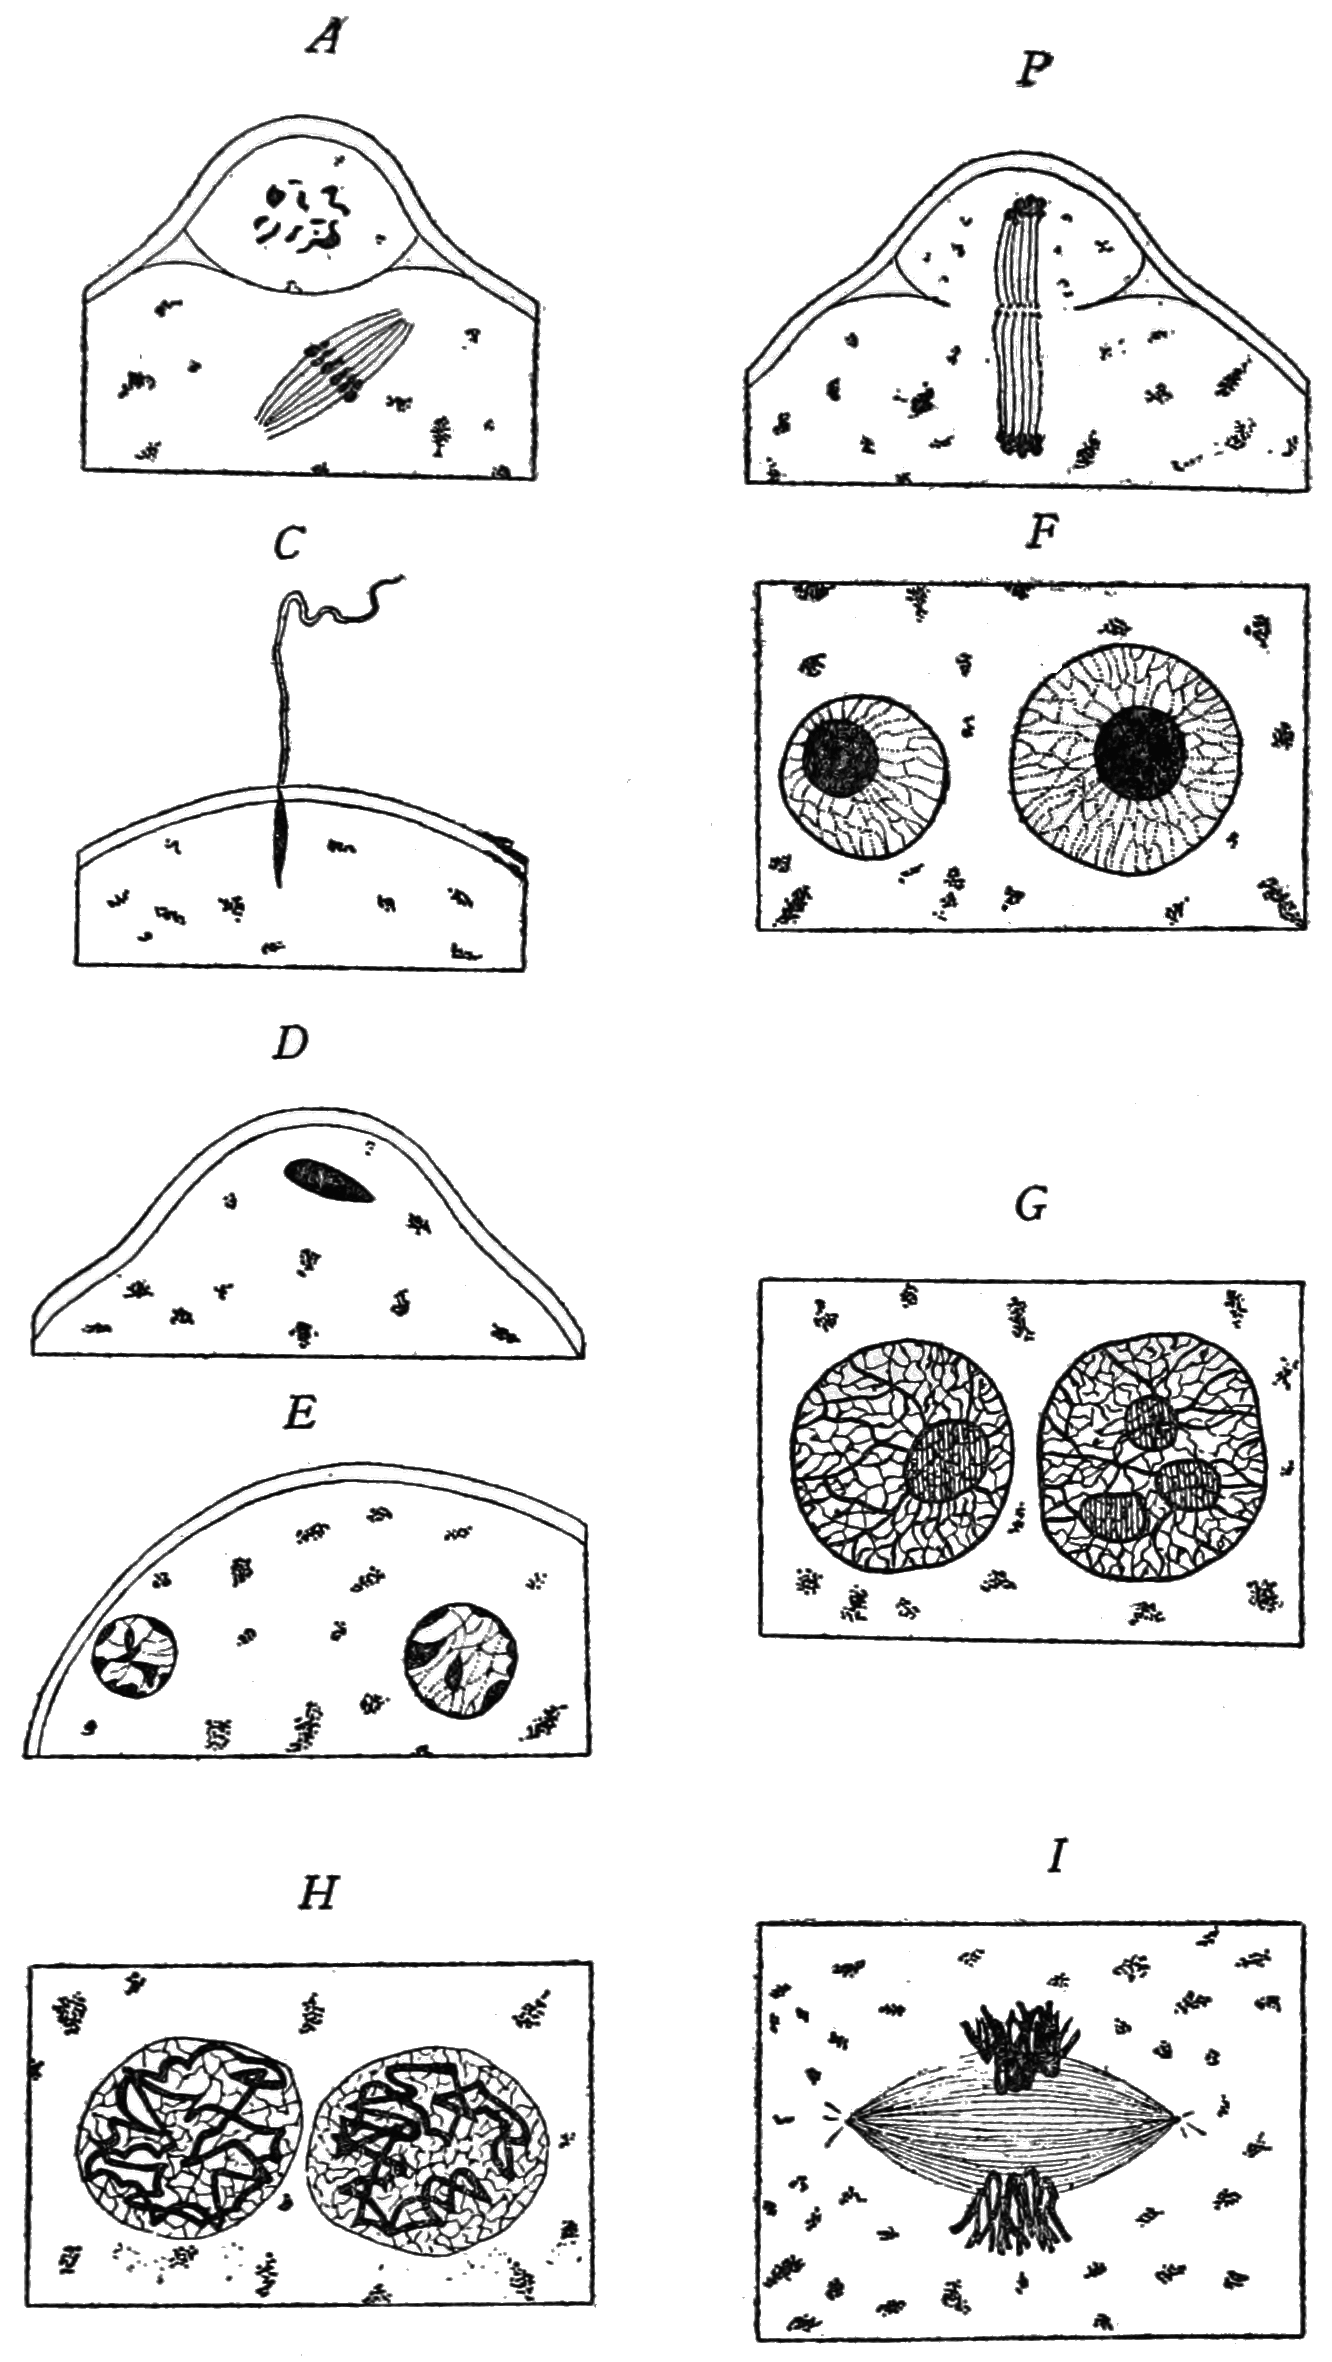 PSM V85 D119 Mouse egg maturation and fertilization diagram.png